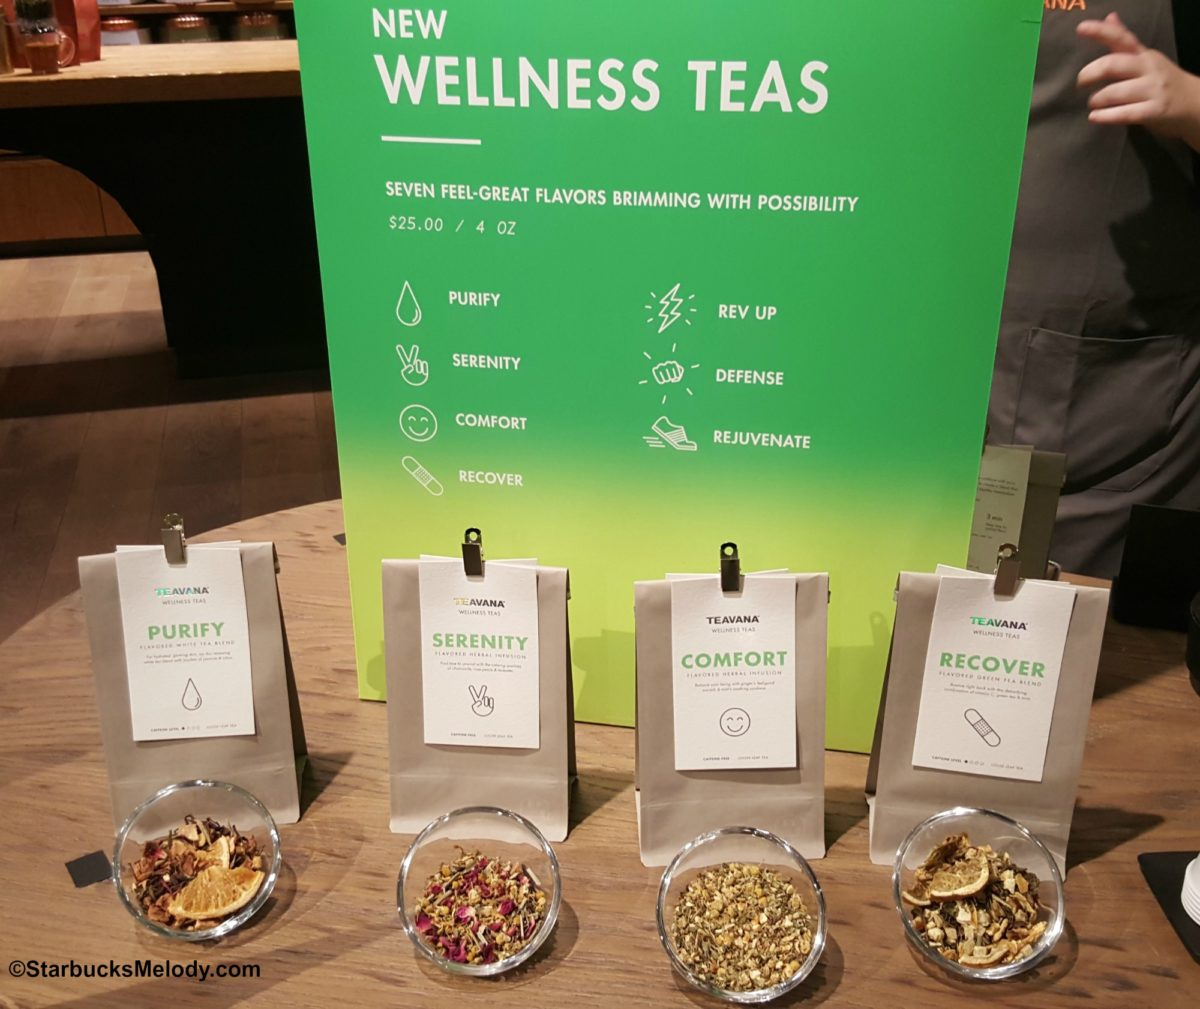 First Ever National Hot Tea Day: Celebrate with 7 all-new Wellness Teas from Teavana!